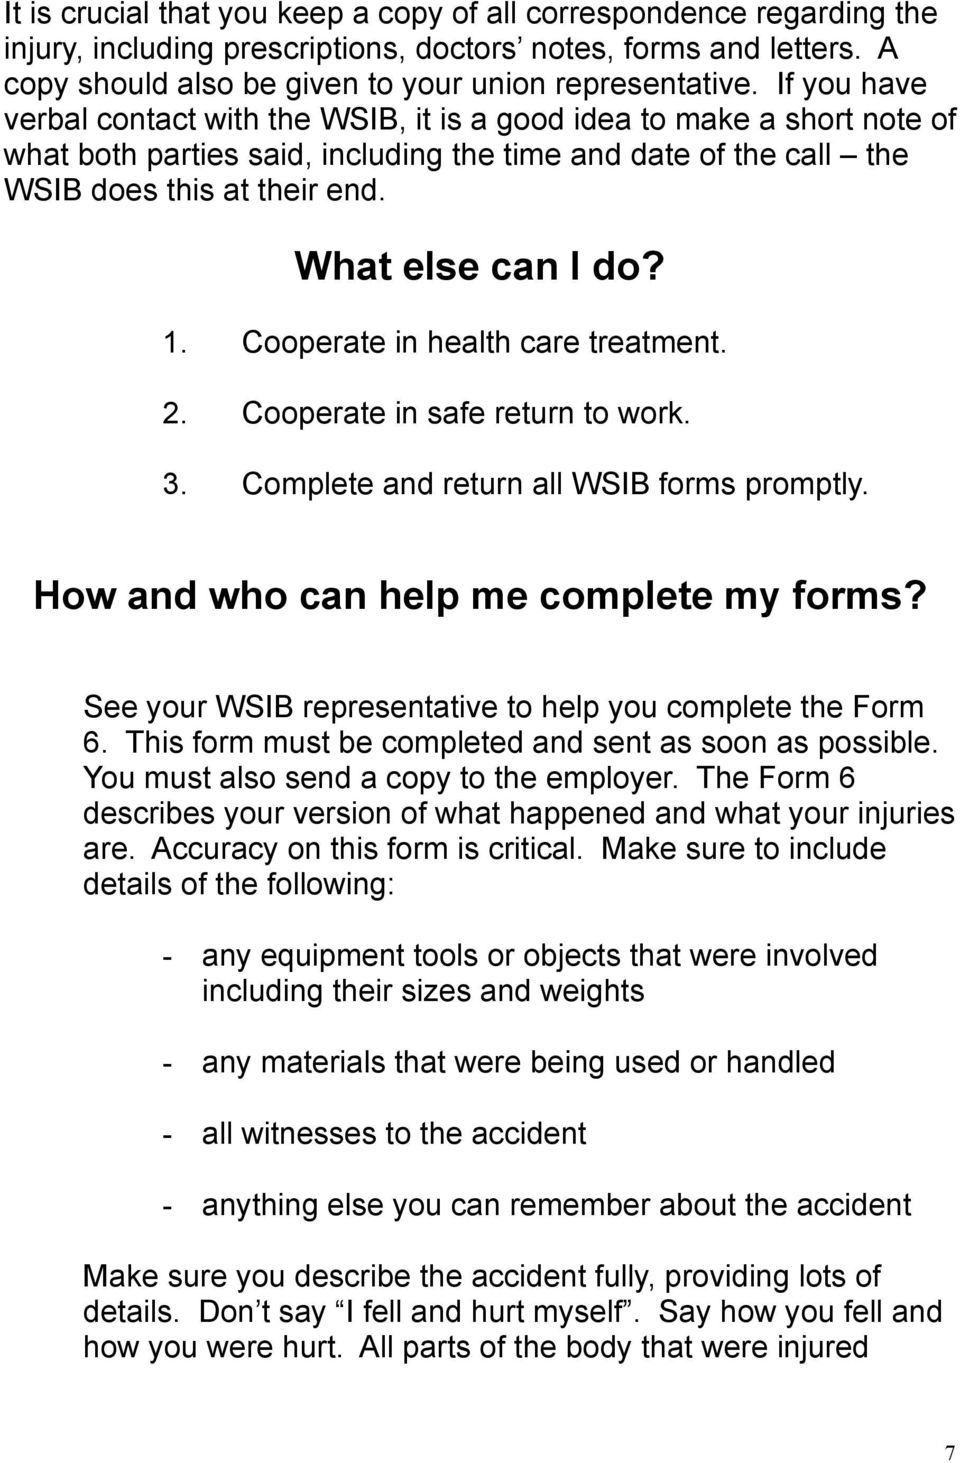 1. Cooperate in health care treatment. 2. Cooperate in safe return to work. 3. Complete and return all WSIB forms promptly. How and who can help me complete my forms?